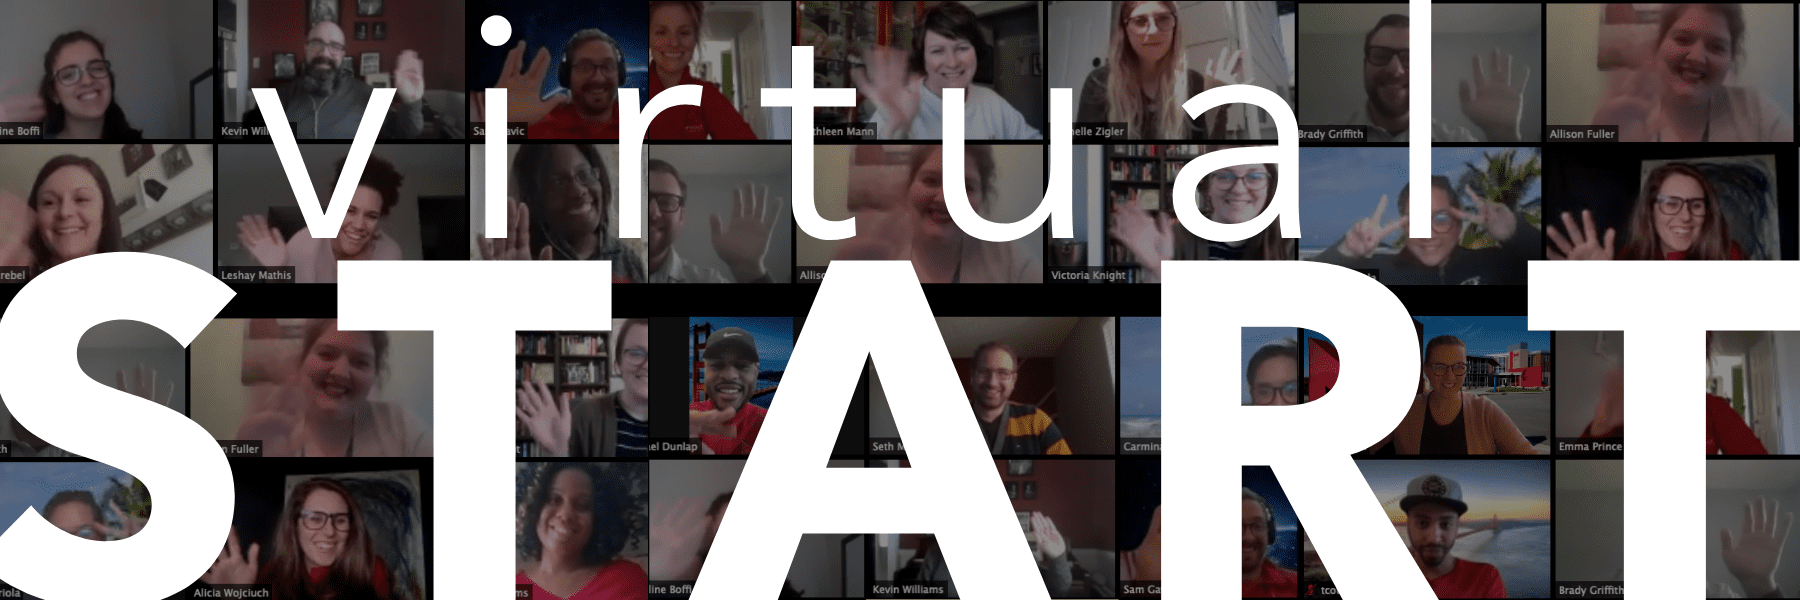 members of student success on a virtual meeting waving hello